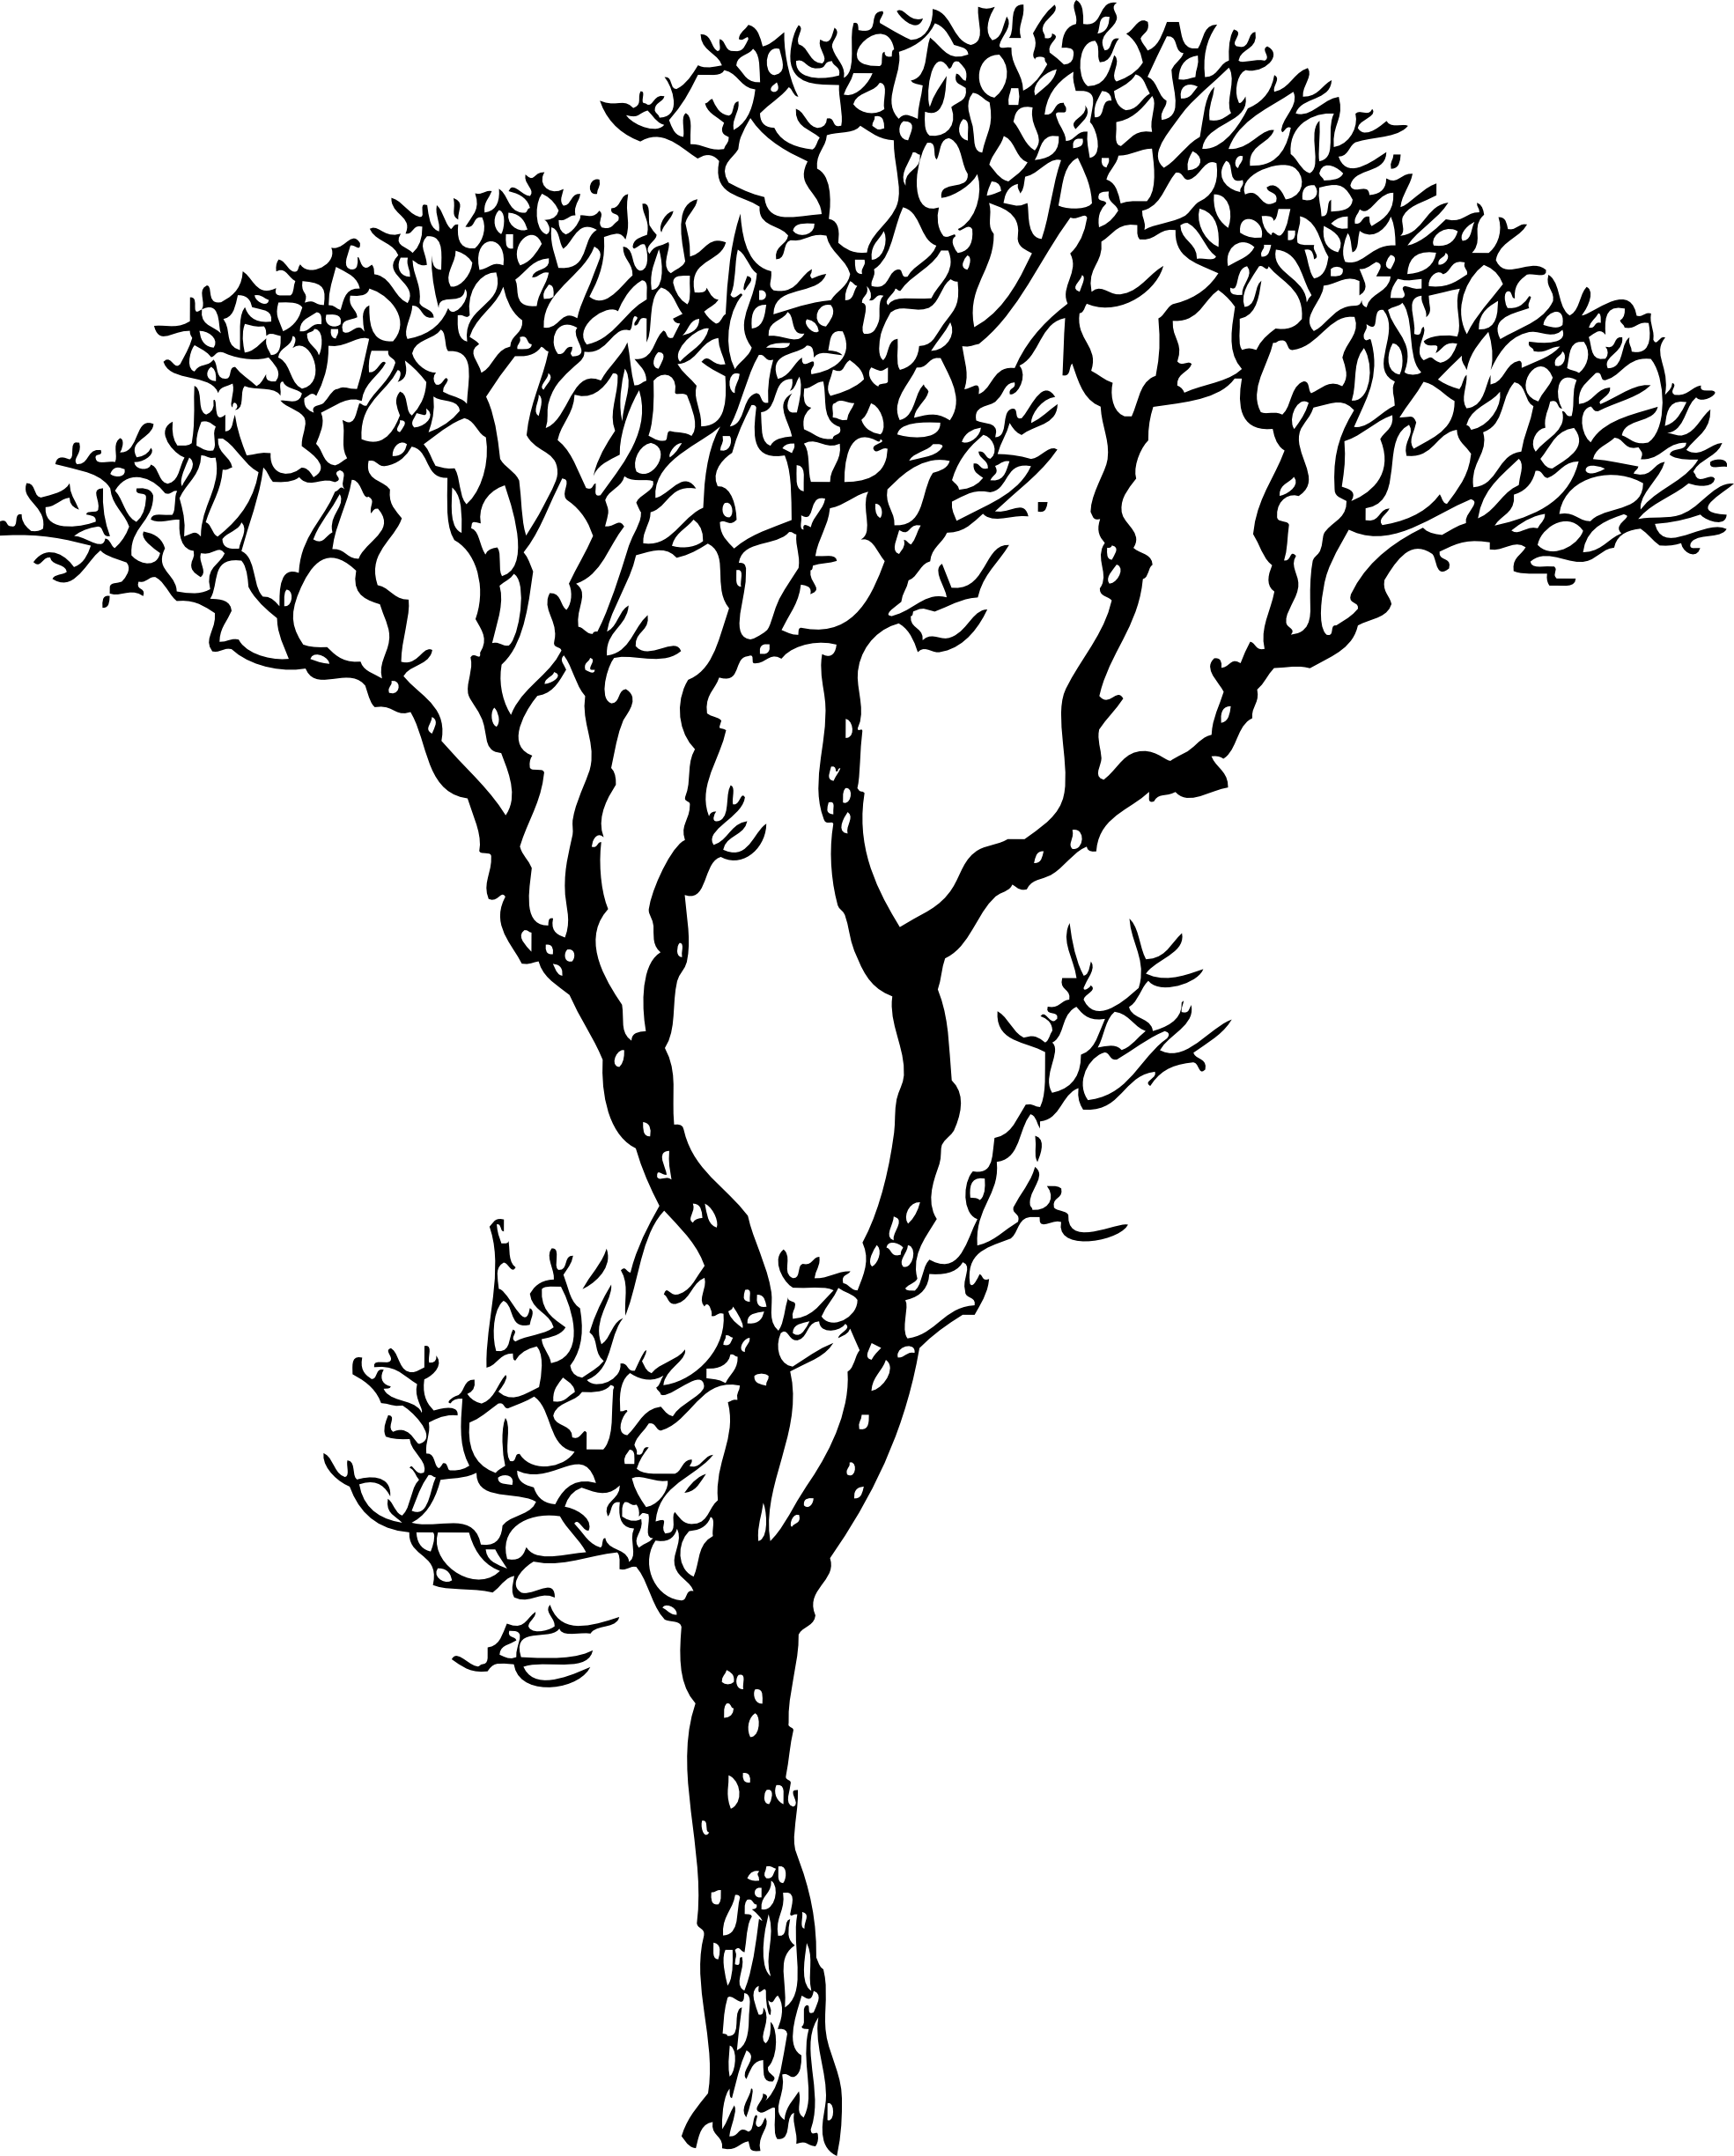 Haunted tree clipart freeuse library Bare Tree Black White Line Art Coloring Book Colouring Letters ... freeuse library